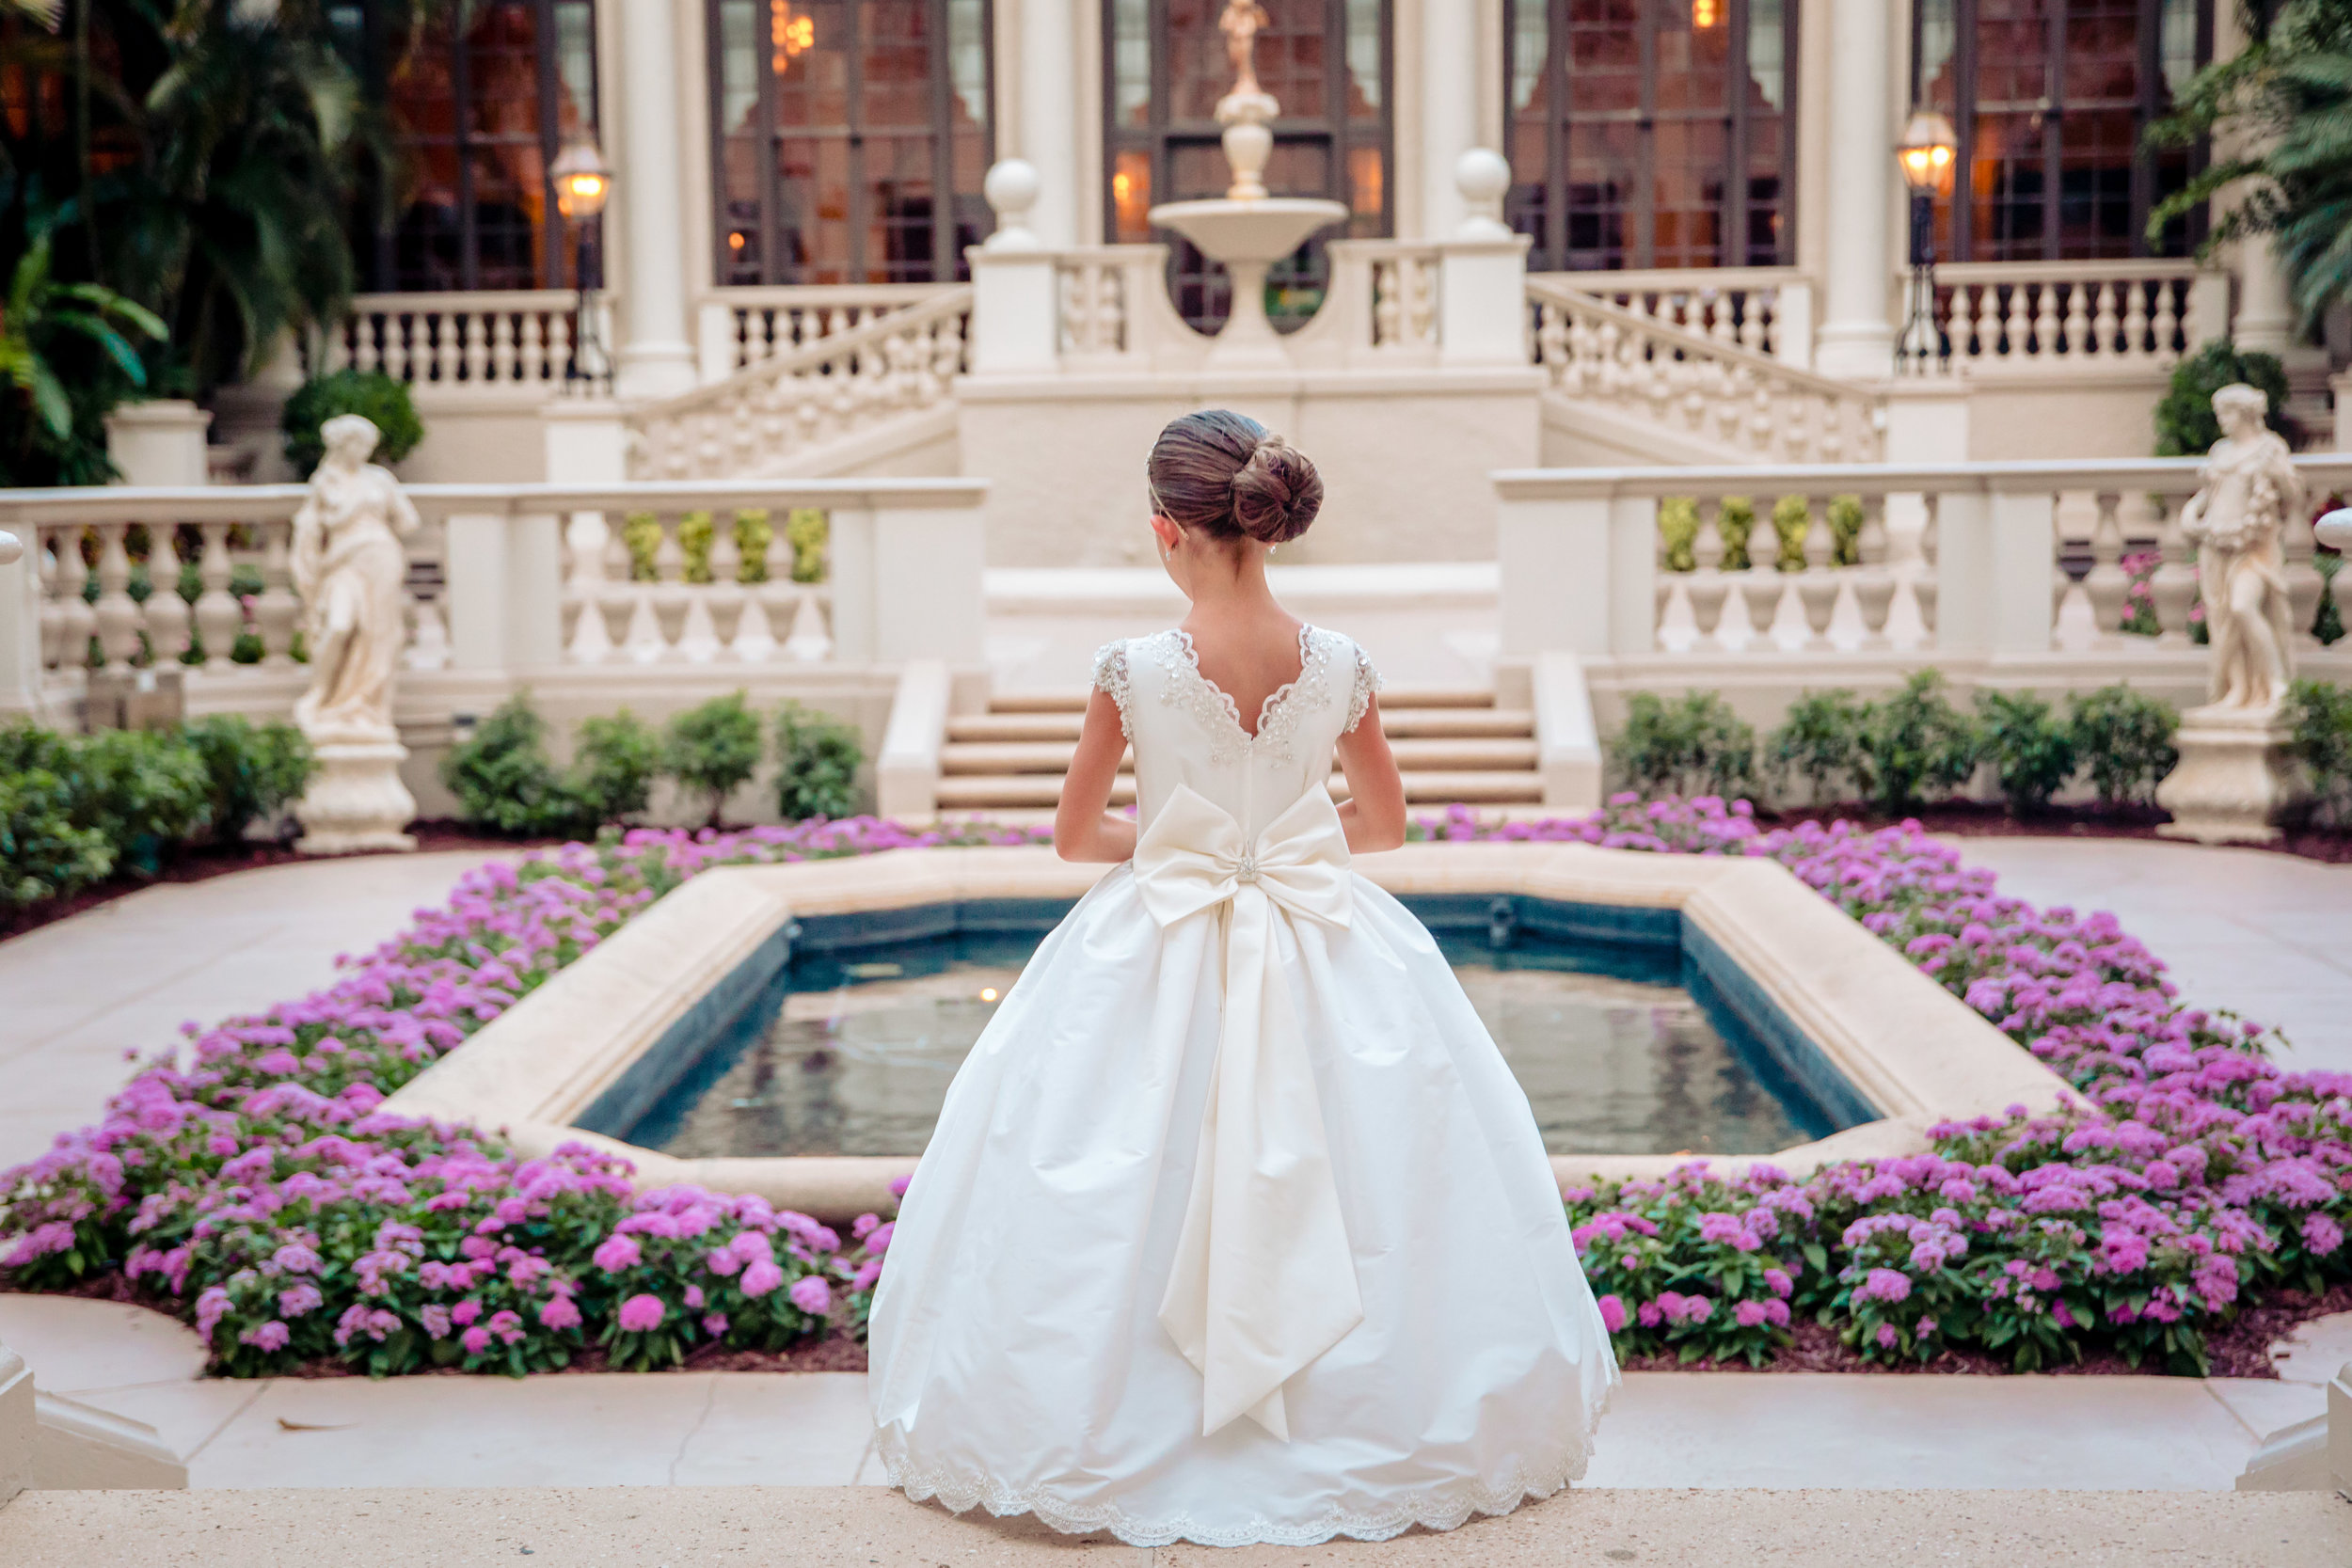 First Communion photography session at The Breakers Palm Beach